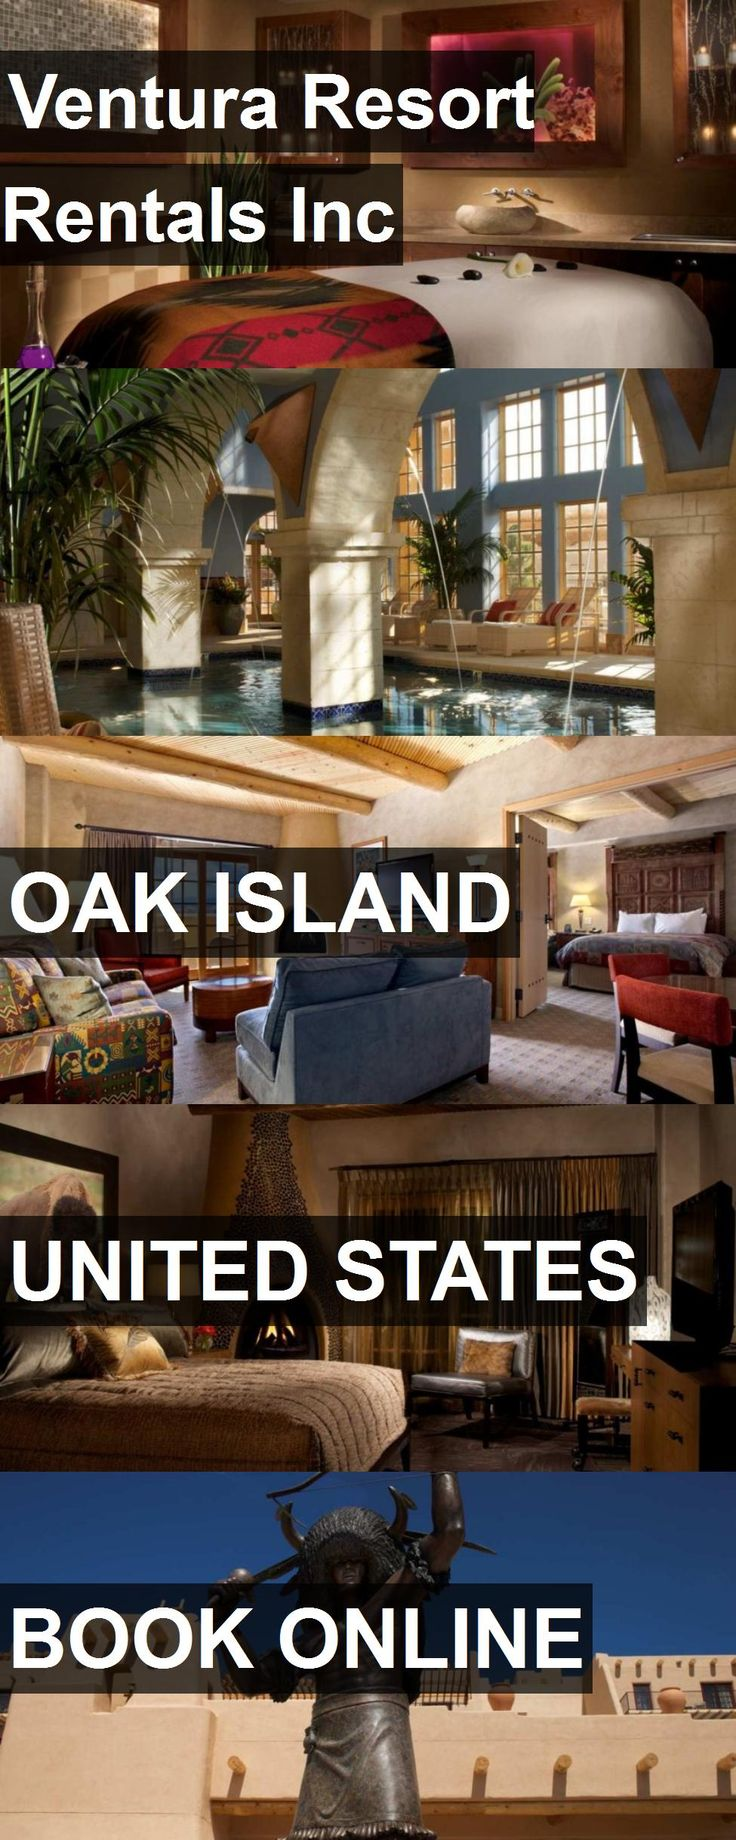 Hotel Ventura Resort Rentals Inc in Oak Island, United States. For more information, photos, reviews and best prices please follow the link. #UnitedStates #OakIsland #VenturaResortRentalsInc #hotel #travel #vacation